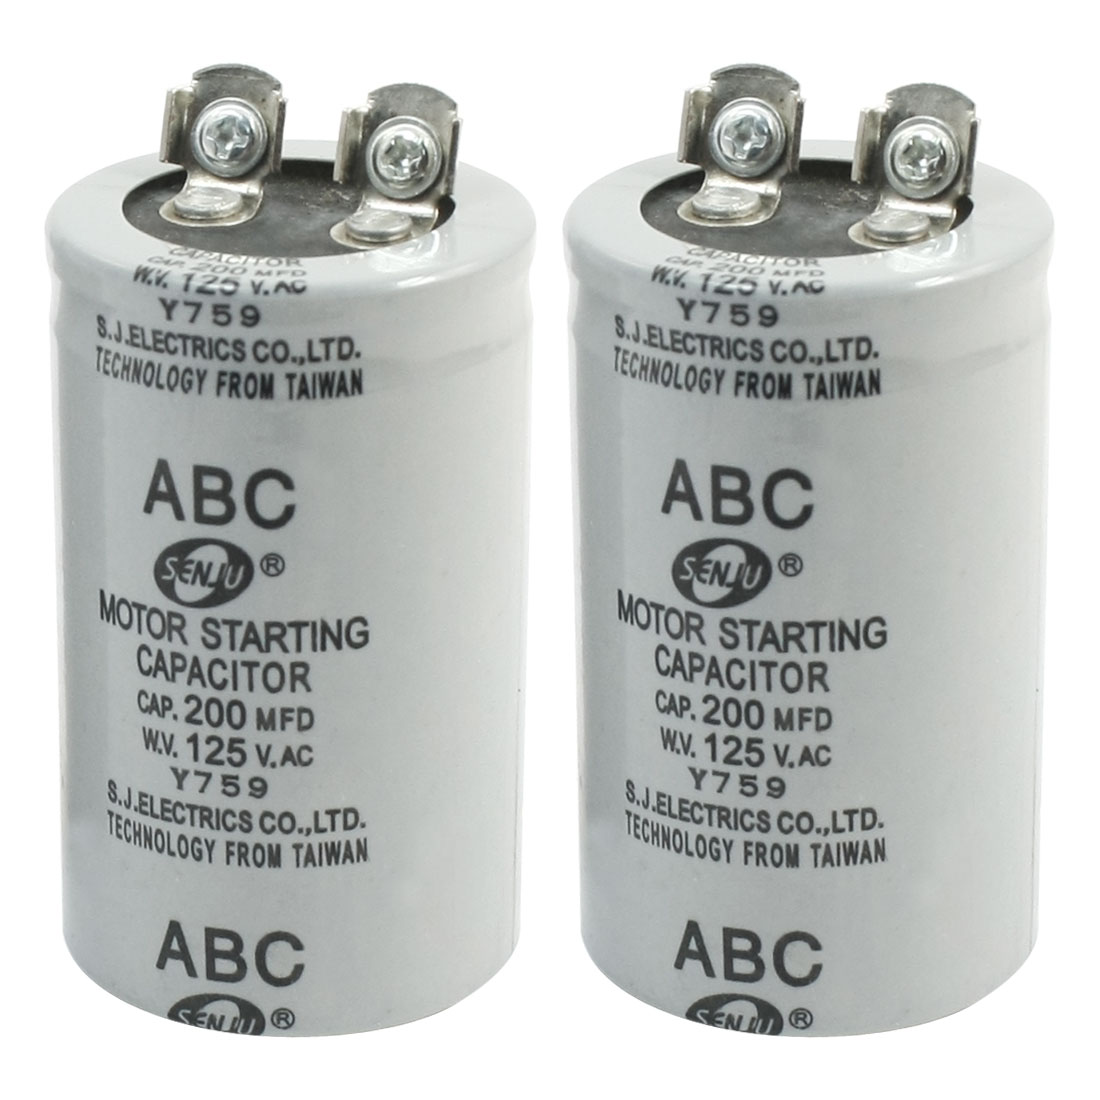 2Pcs AC125V 200MFD 200uF 2 Screw Terminals Motor Start Capacitor